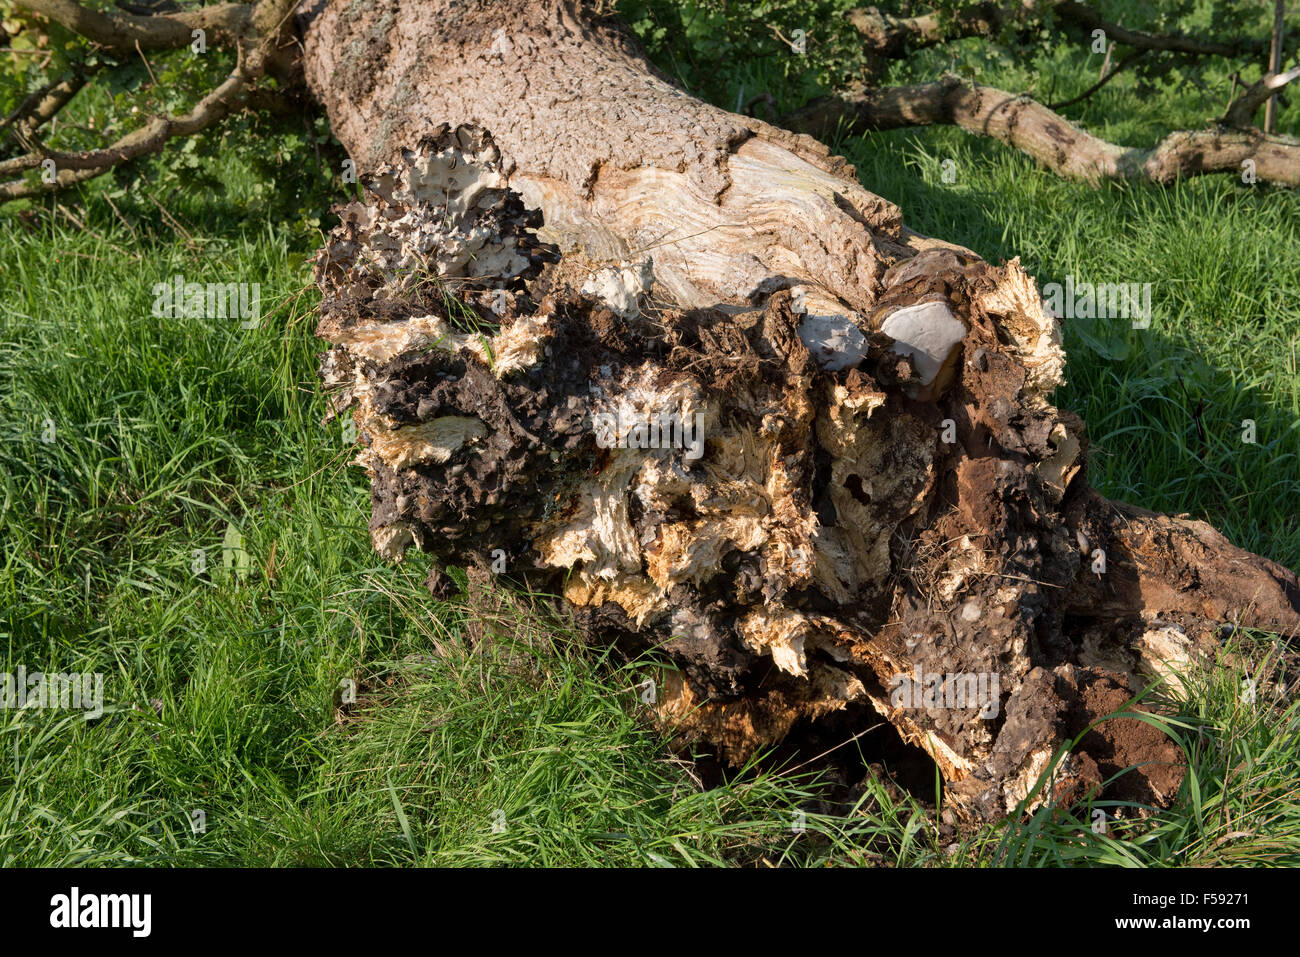 Fallen oak tree rotting and killed by several fungal pathogens with fruit bodies formed at its base, September - Stock Image